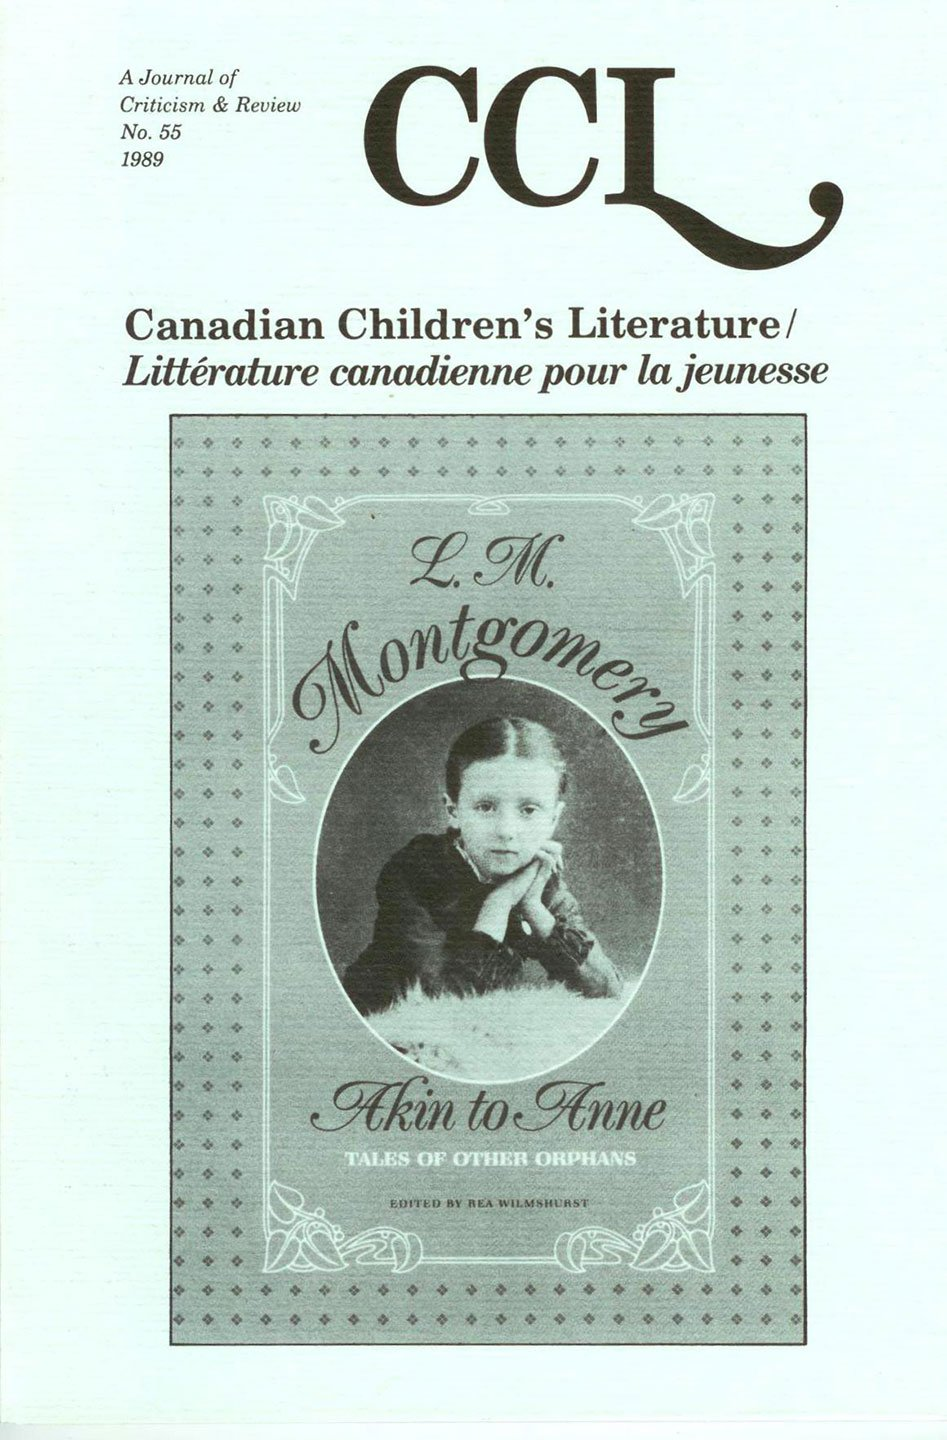 Canadian Children's Literature: A Journal of Criticism & Review: L. M. Montgomery Bibliography